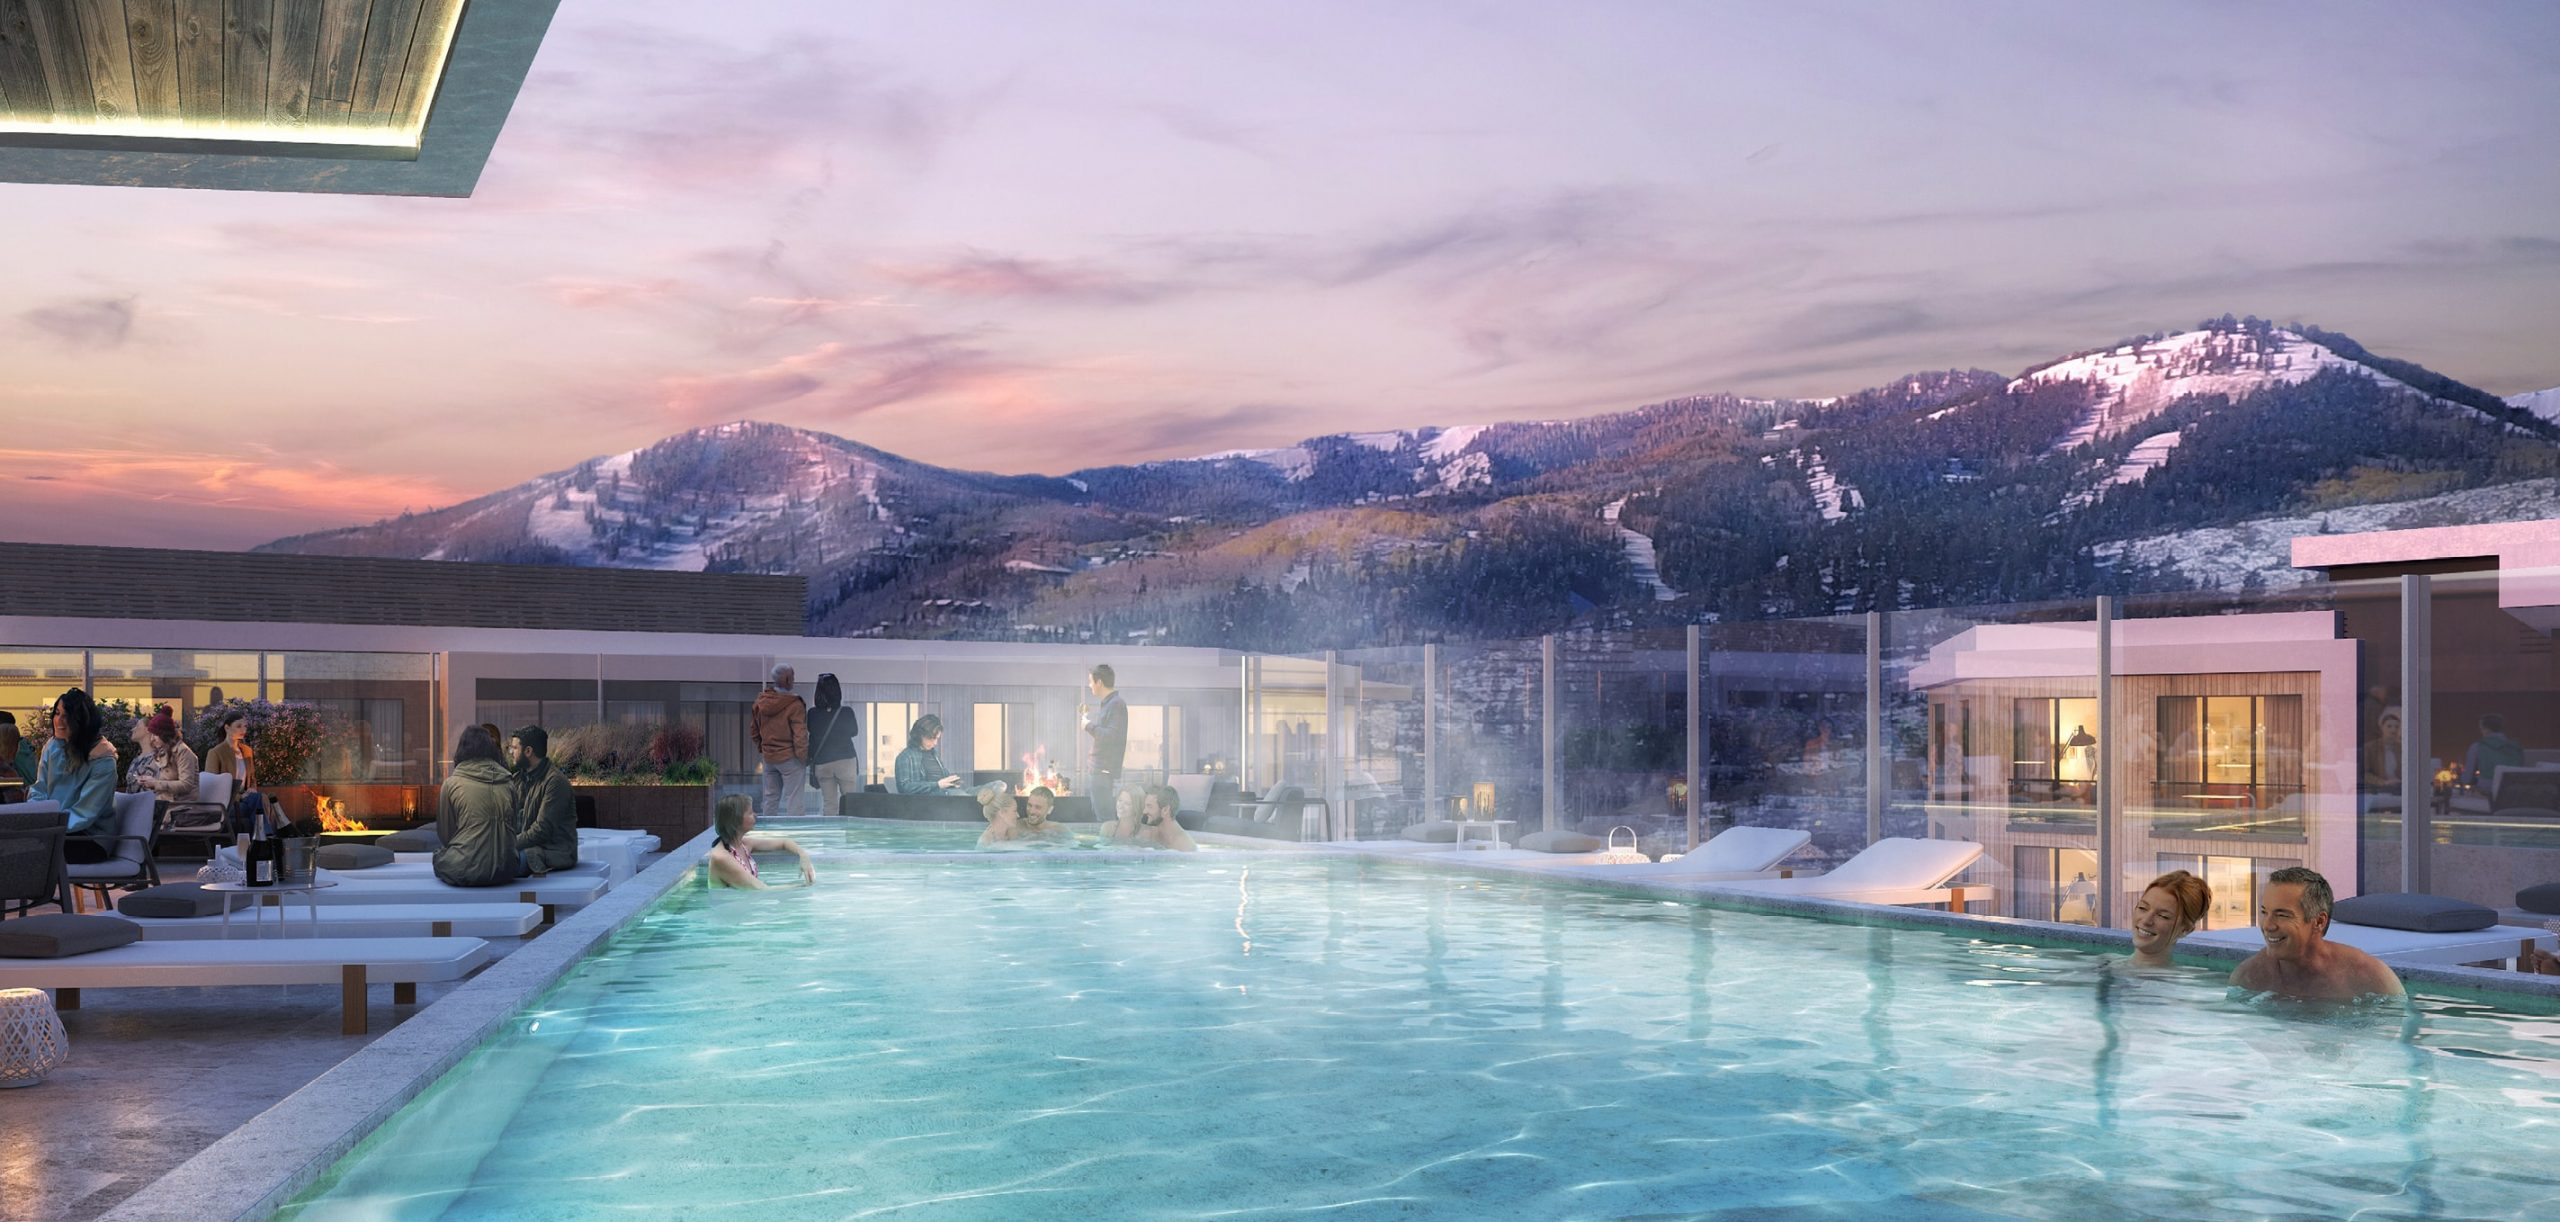 4 Mountain Residential Communities with Dreamy Pools